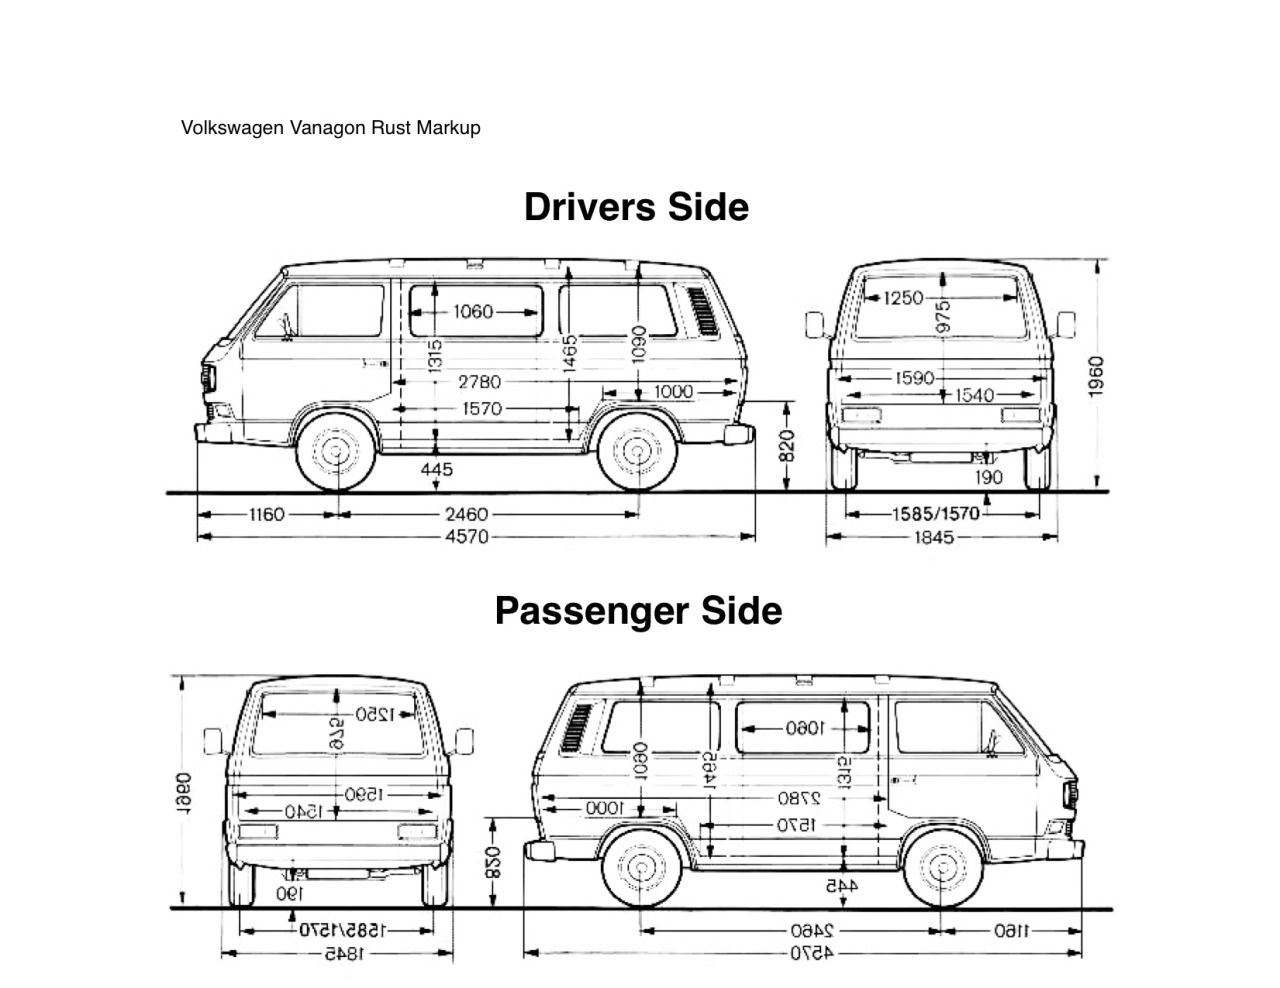 hight resolution of vw vanagon rust diagram track the rust or damage to your vanagon body